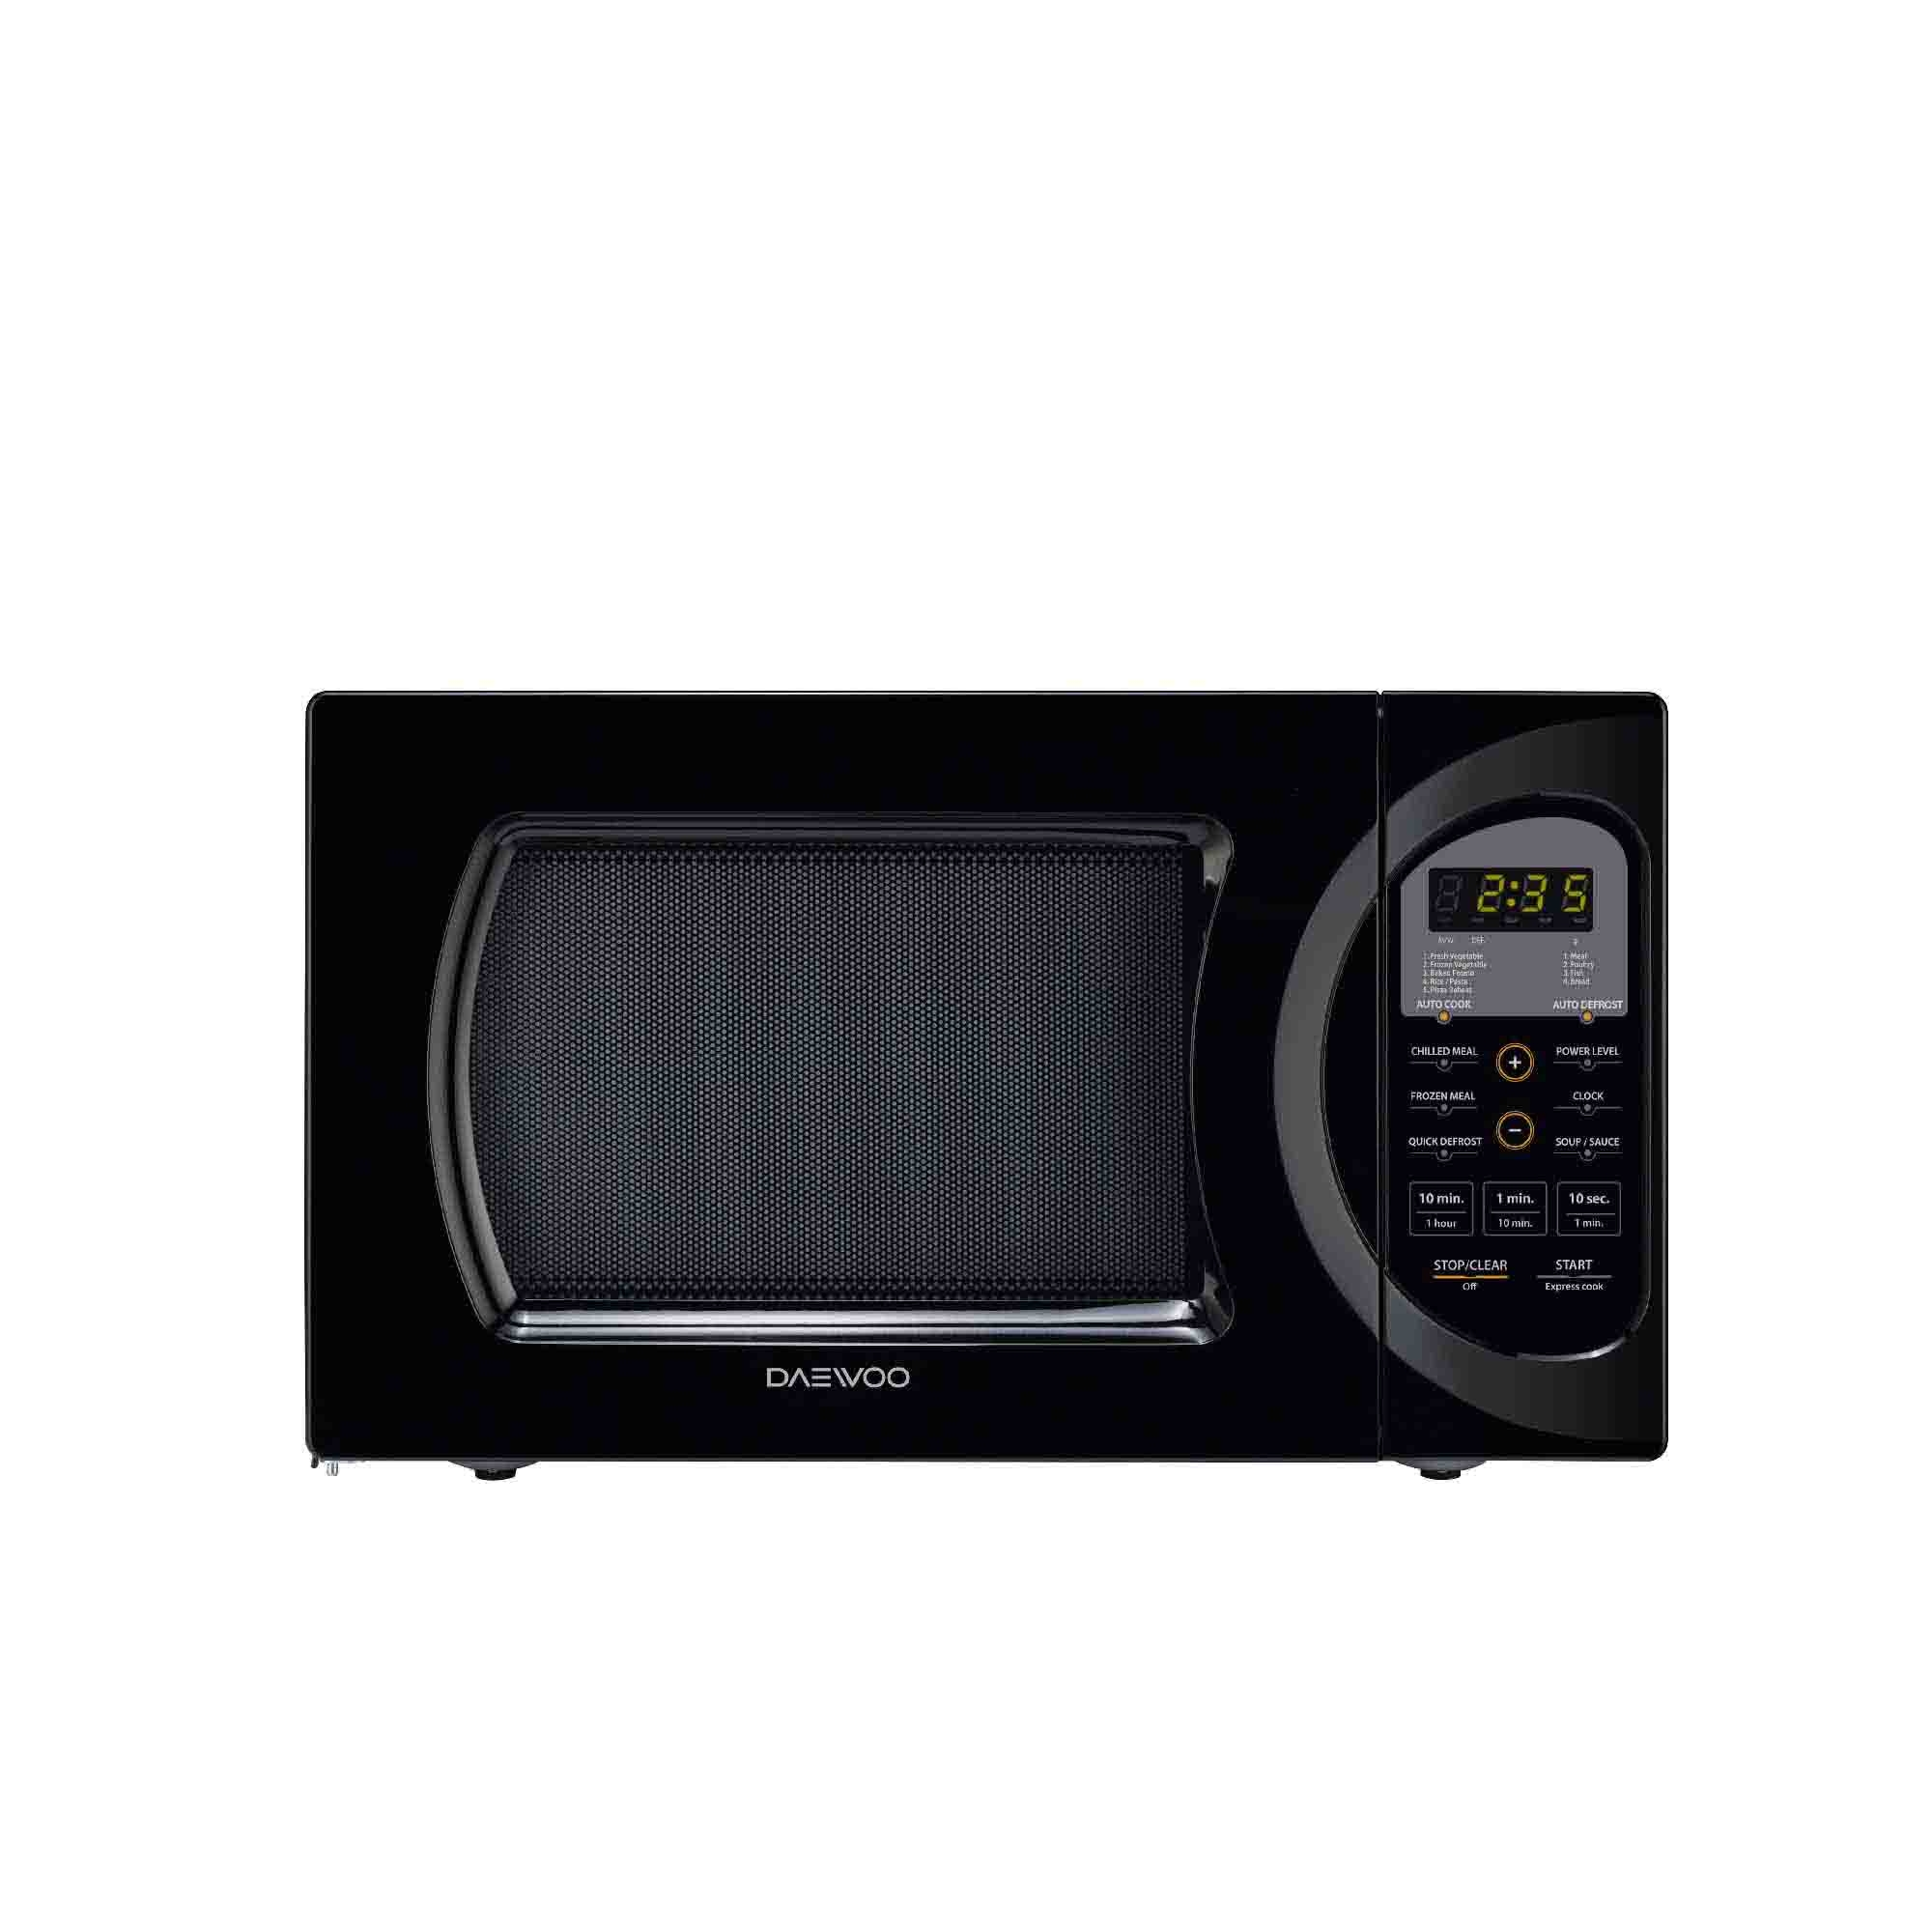 Daewoo Microwave Oven KOR-9GBB (26L) (end 7/4/2020 11:41 AM)